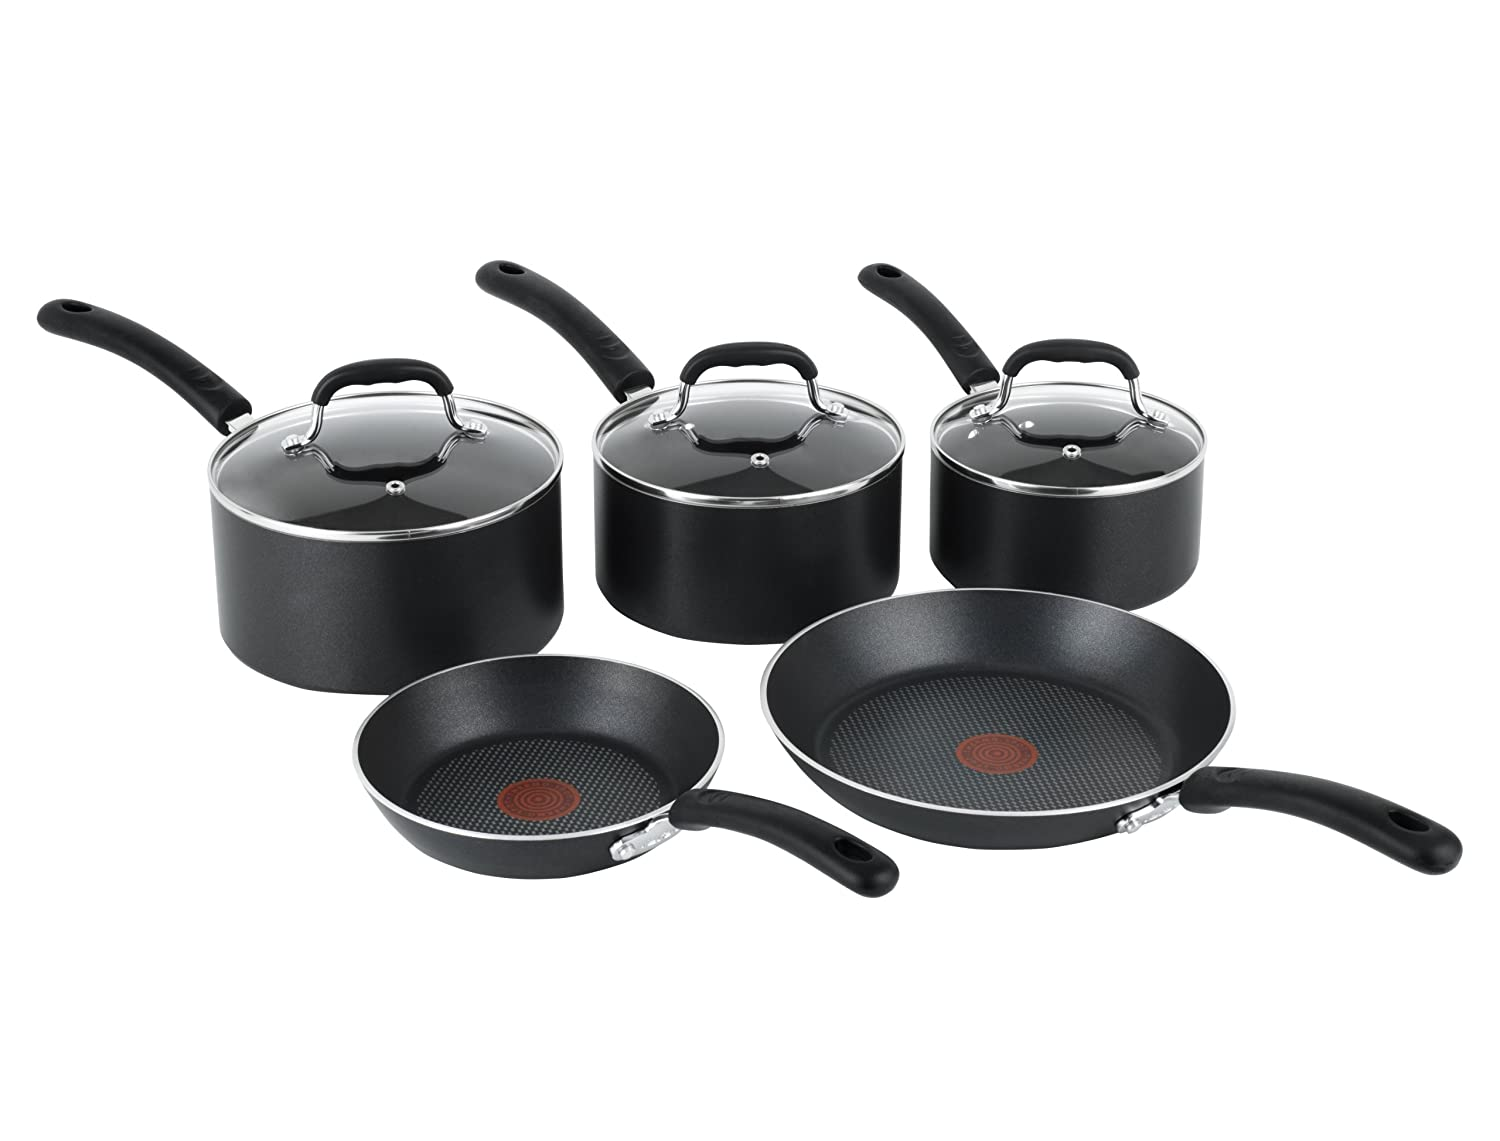 Tefal Pan Set New Tefal Premium Non Stick Cookware Set Induction 5 Pot